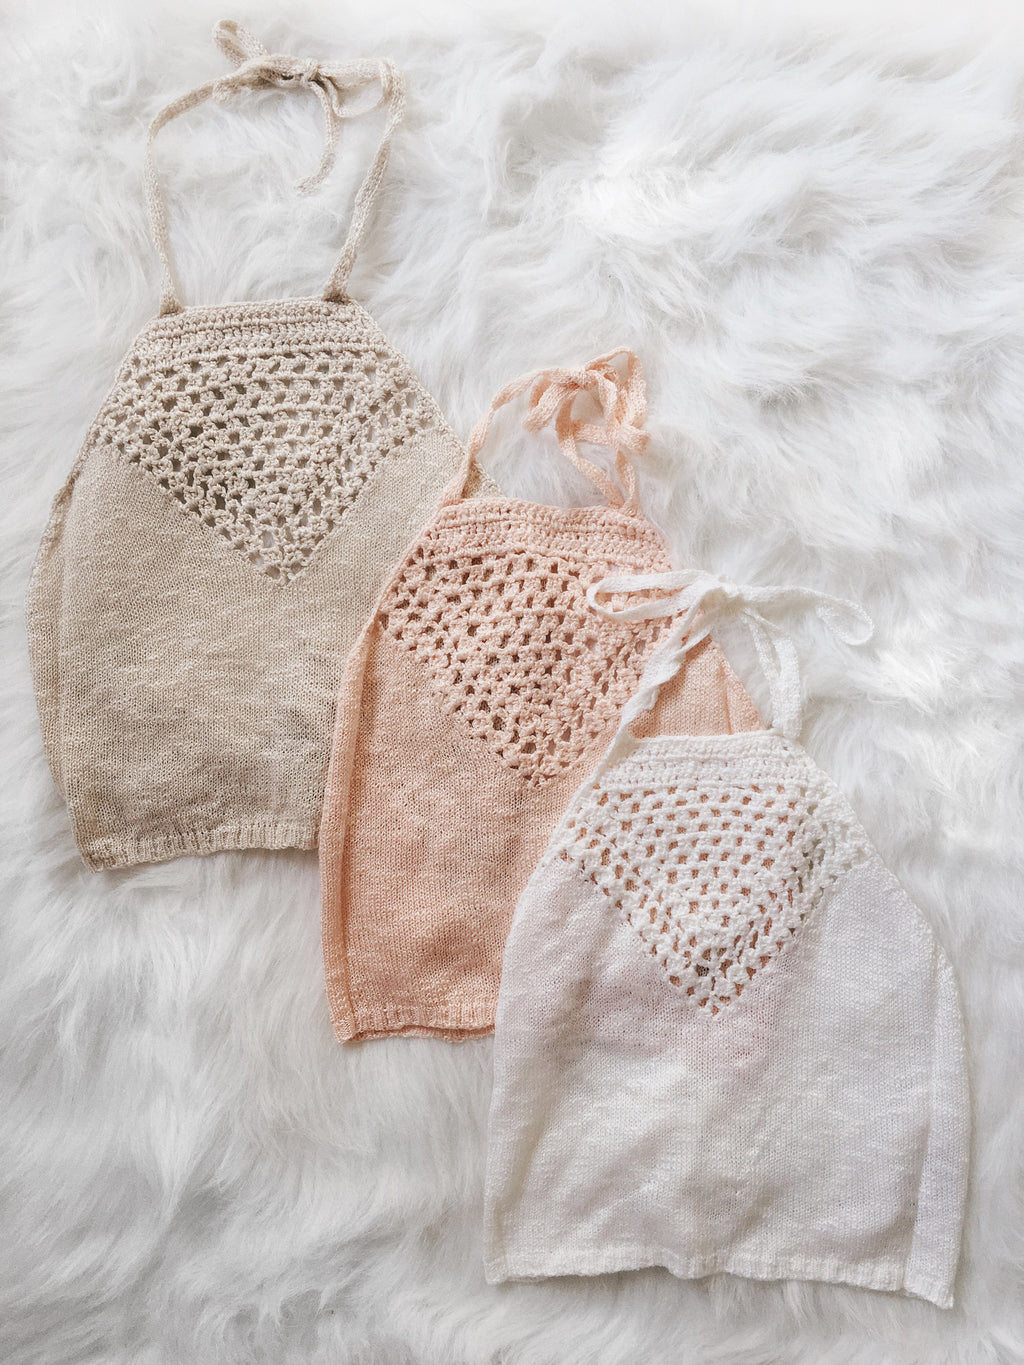 Tiana Sweater Knit Halter (Beige, Peach, White)